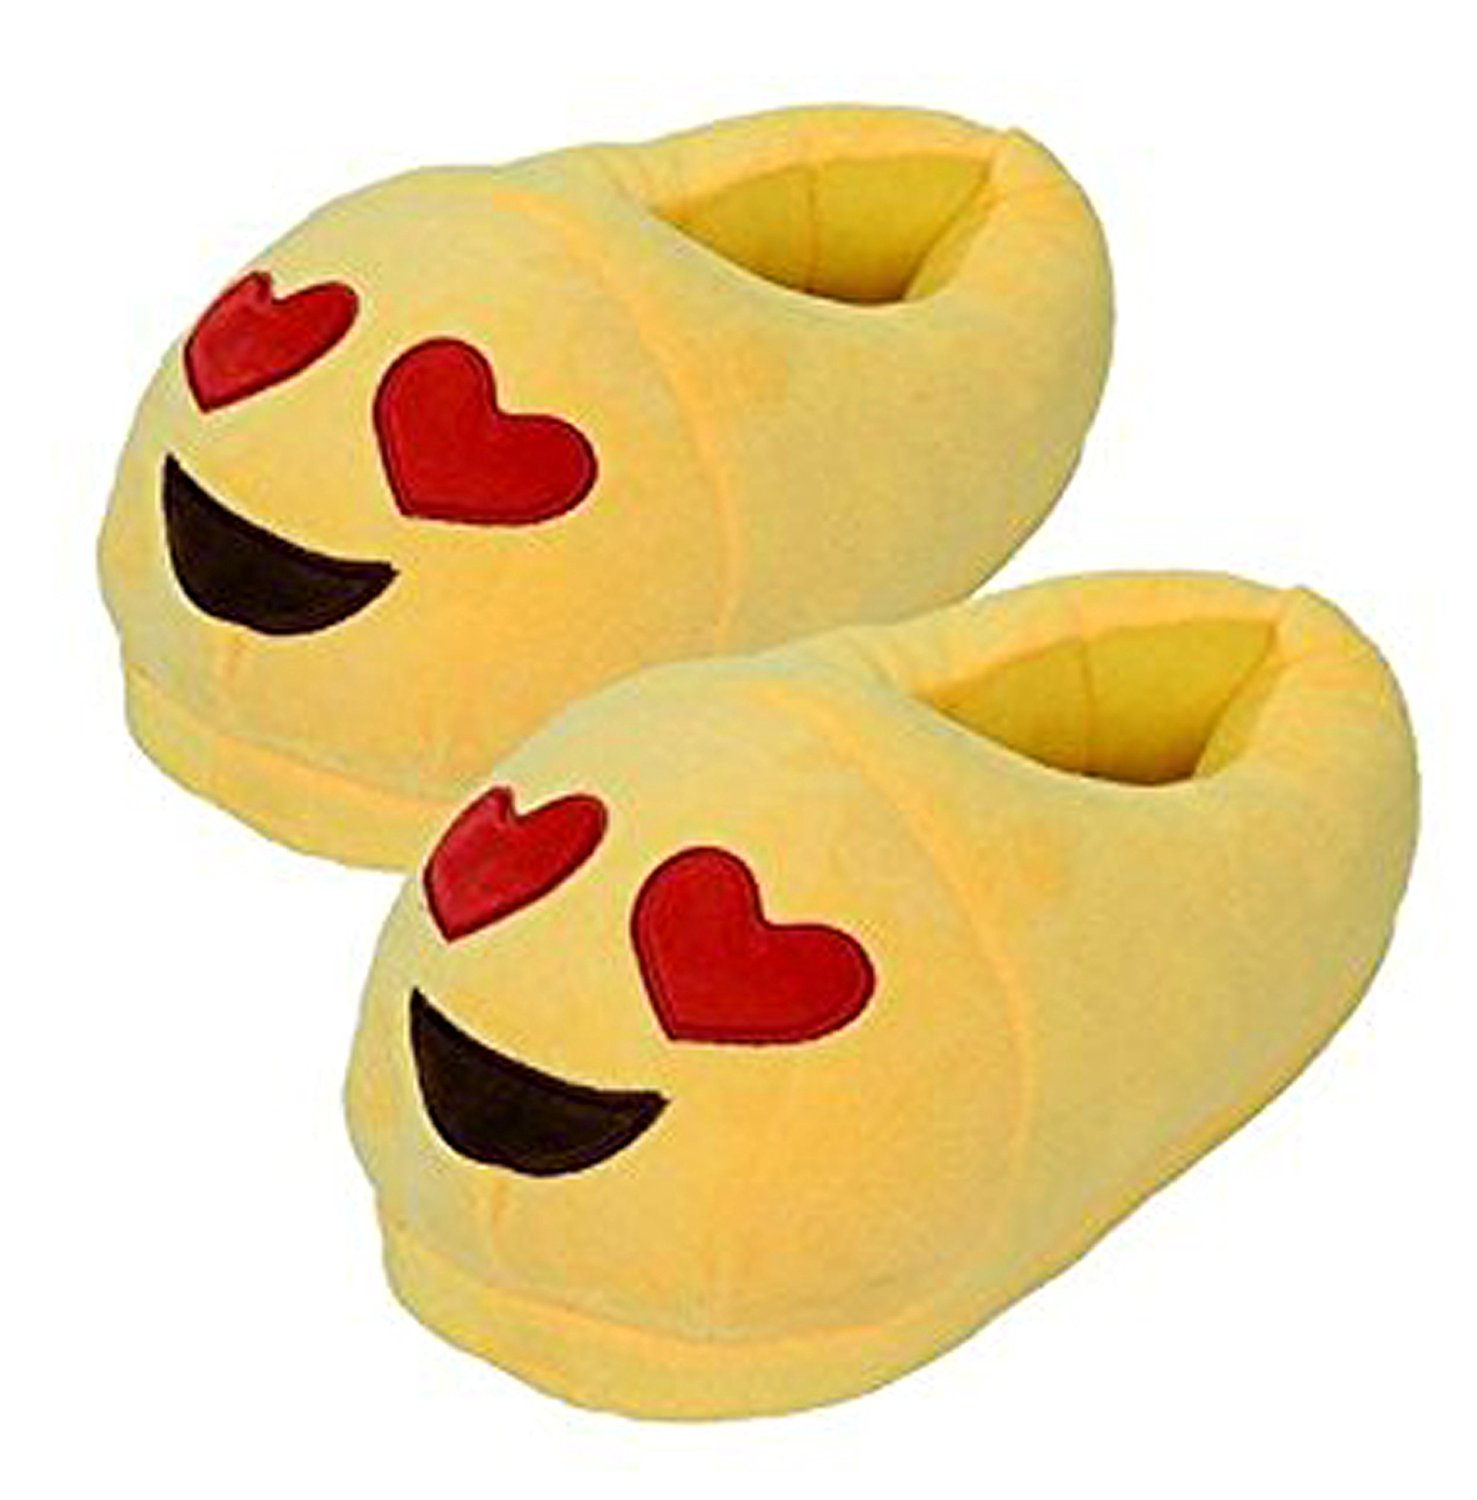 Emoji Red Heart Slippers Plush Cotton Indoor Shoe For Kids & Women Non-Skid Foot pads